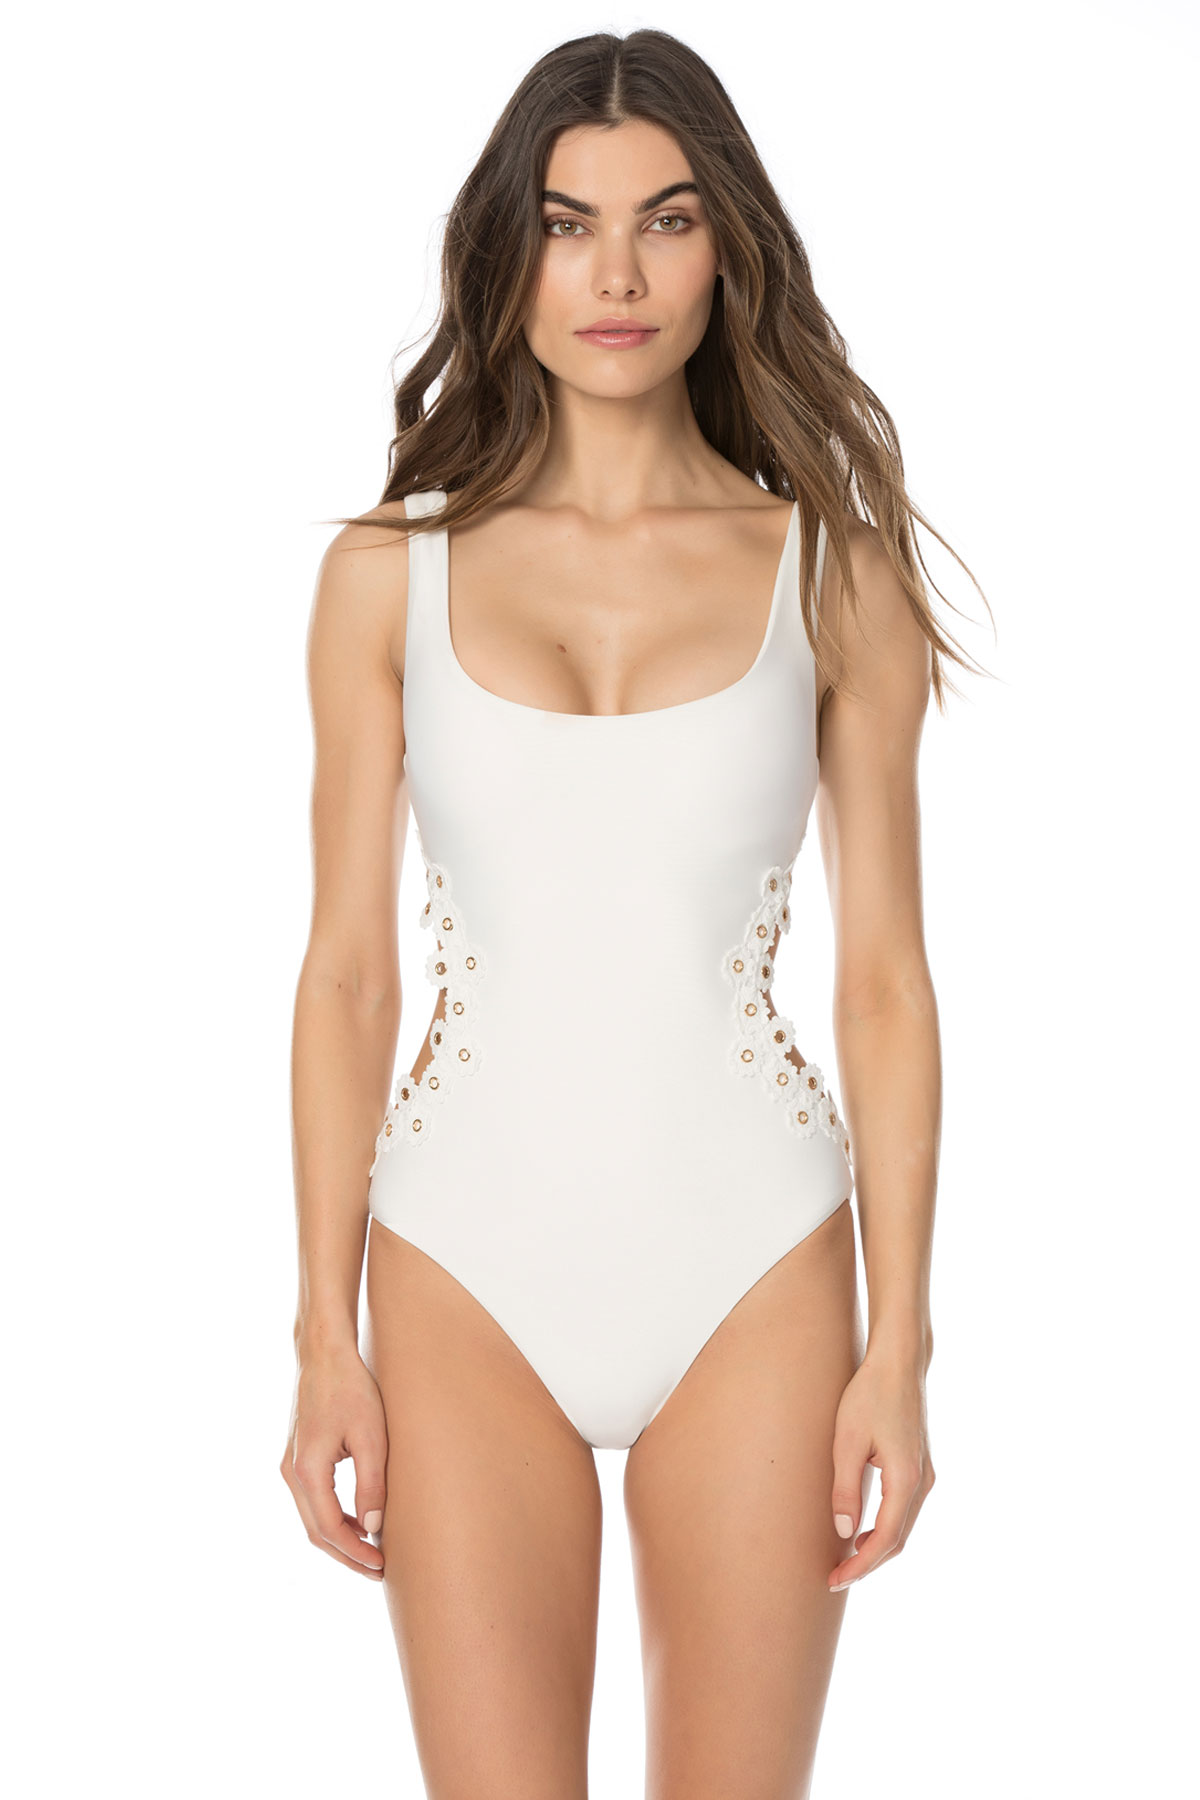 Lace-Up Over The Shoulder One Piece Swimsuit - White 4